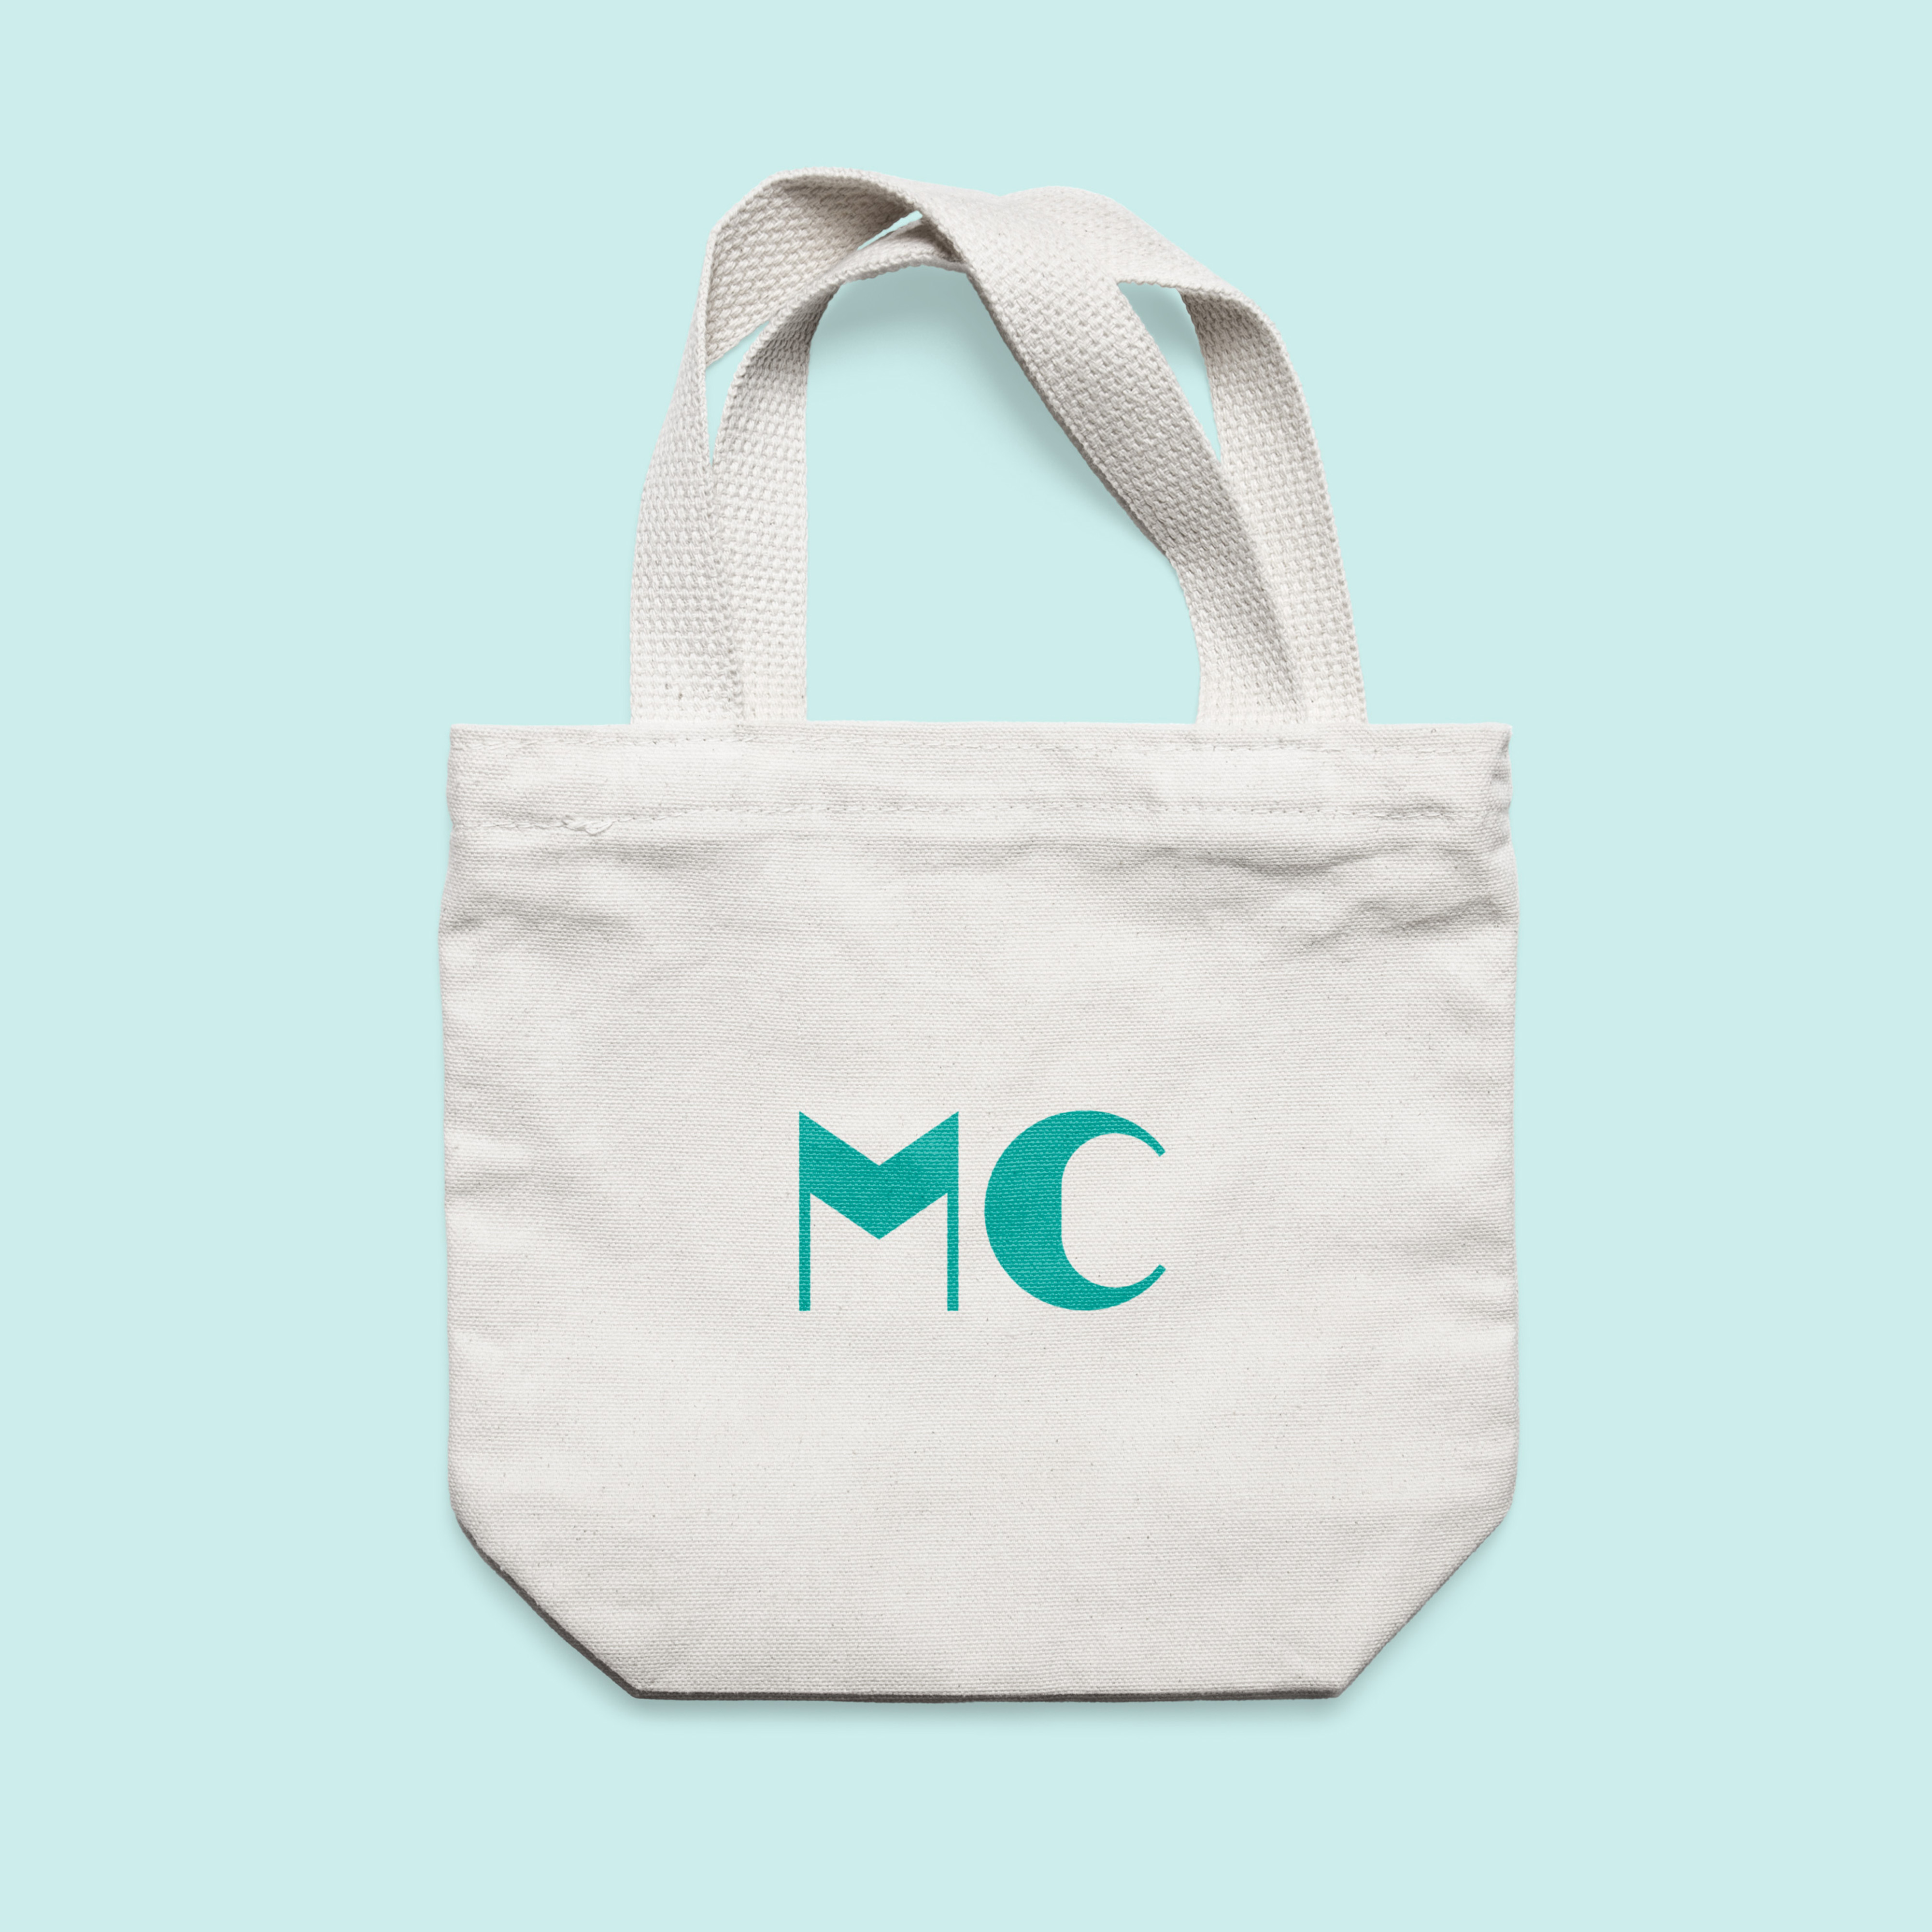 Mamie tote